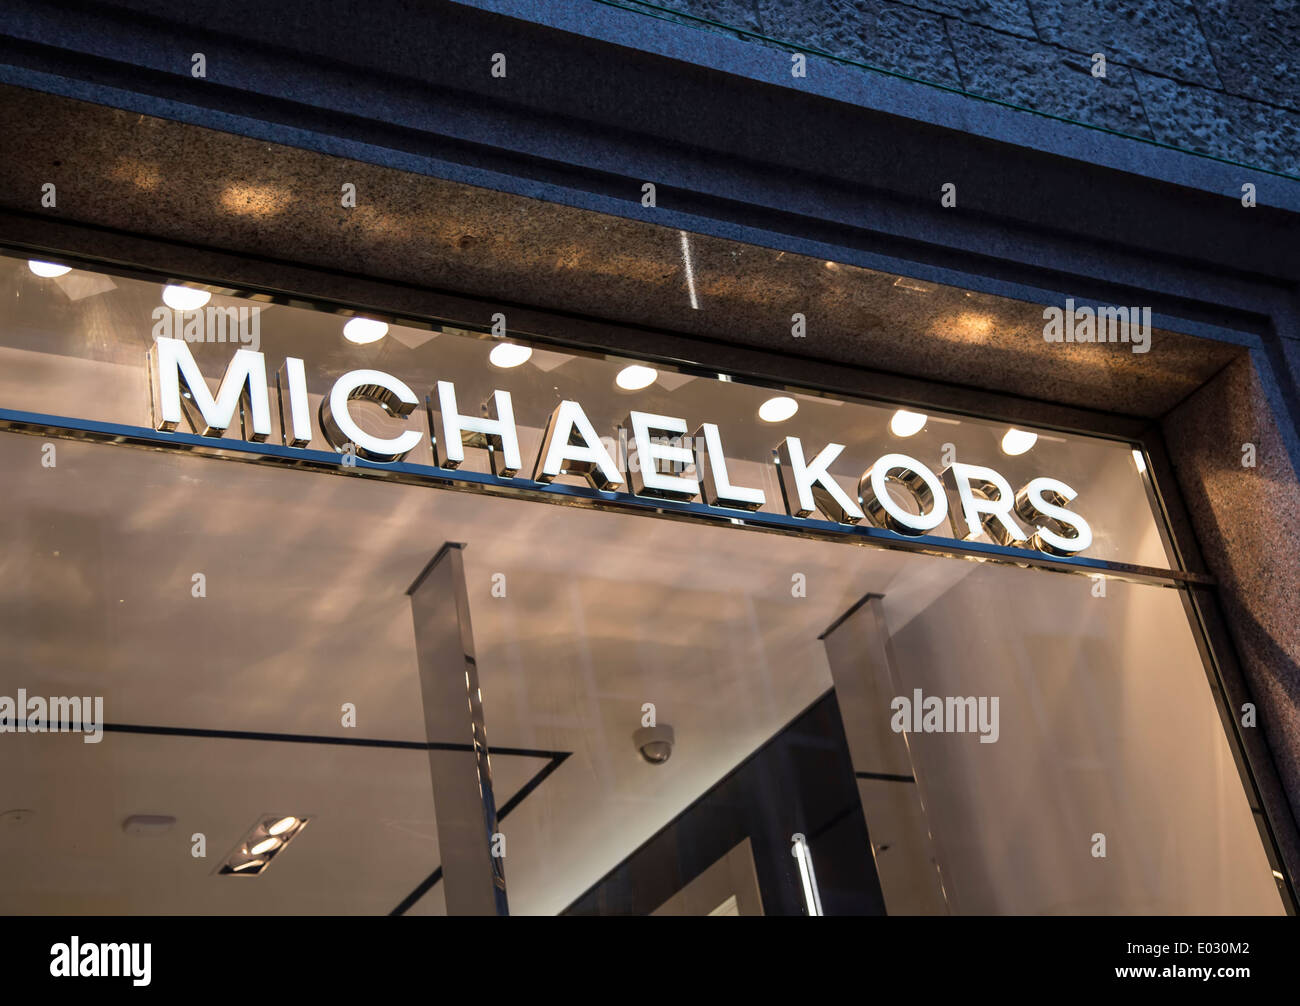 MILAN, ITALY - MARCH 9, 2014: View at Michael Kors shop in Milan. Michael Kors is a New York City-based fashion designer widely known for designing classic American sportswear for women. - Stock Image